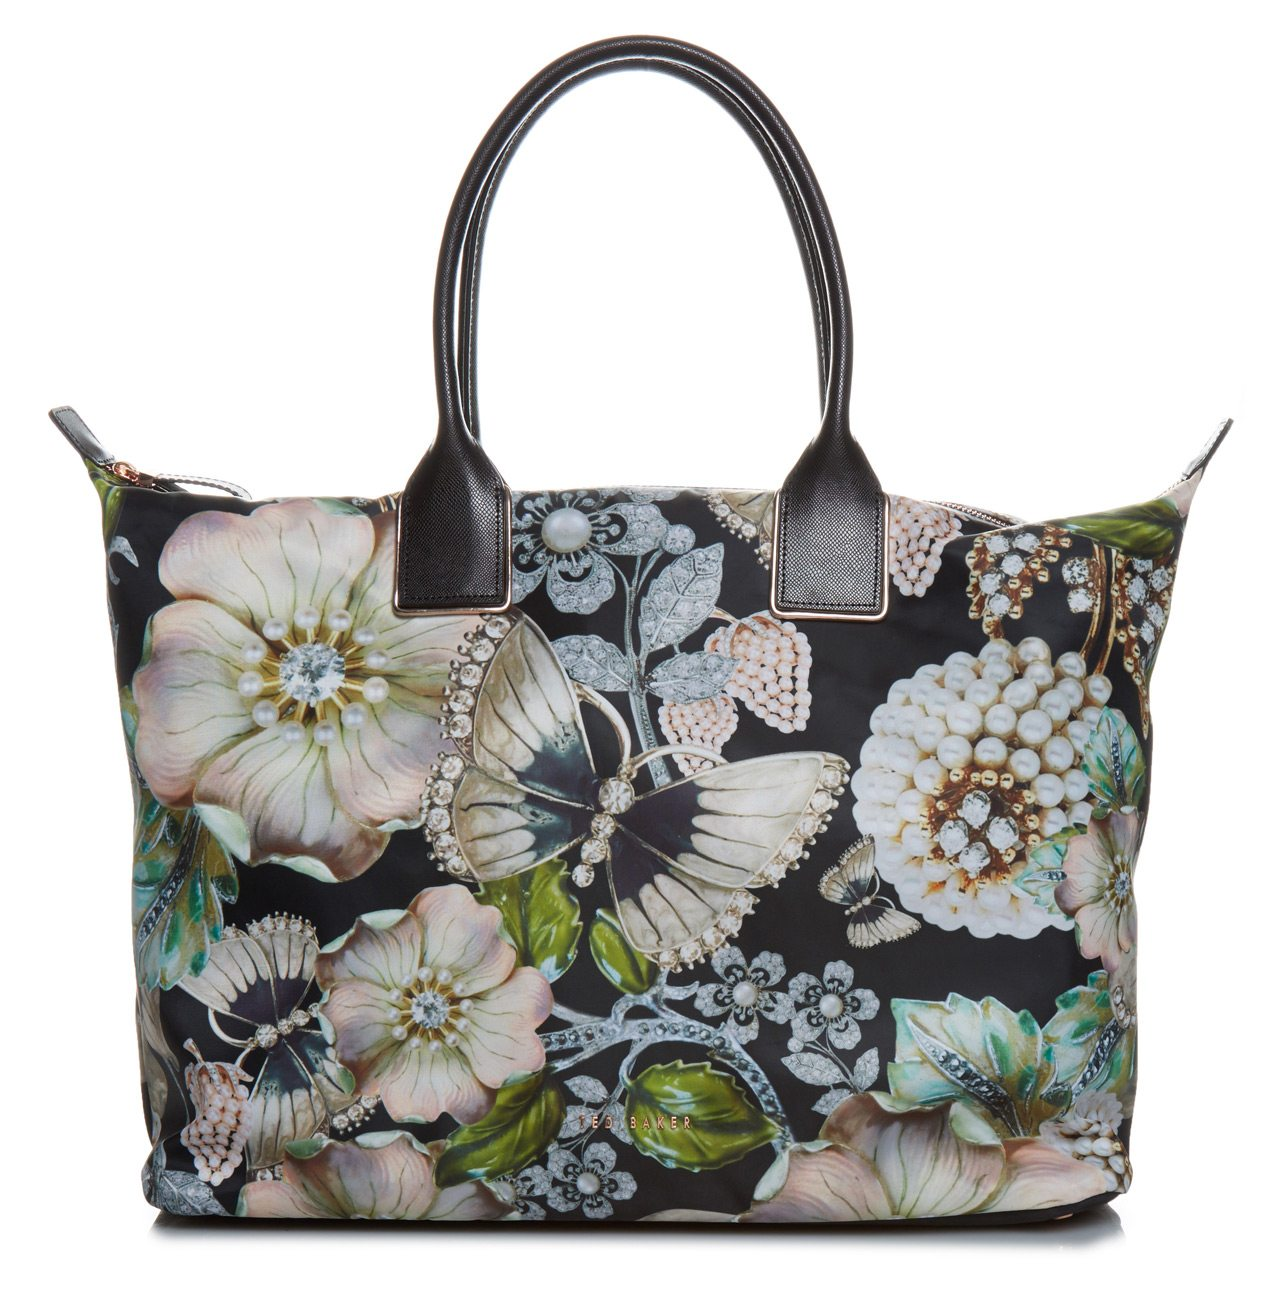 Ted Baker's Immy tote